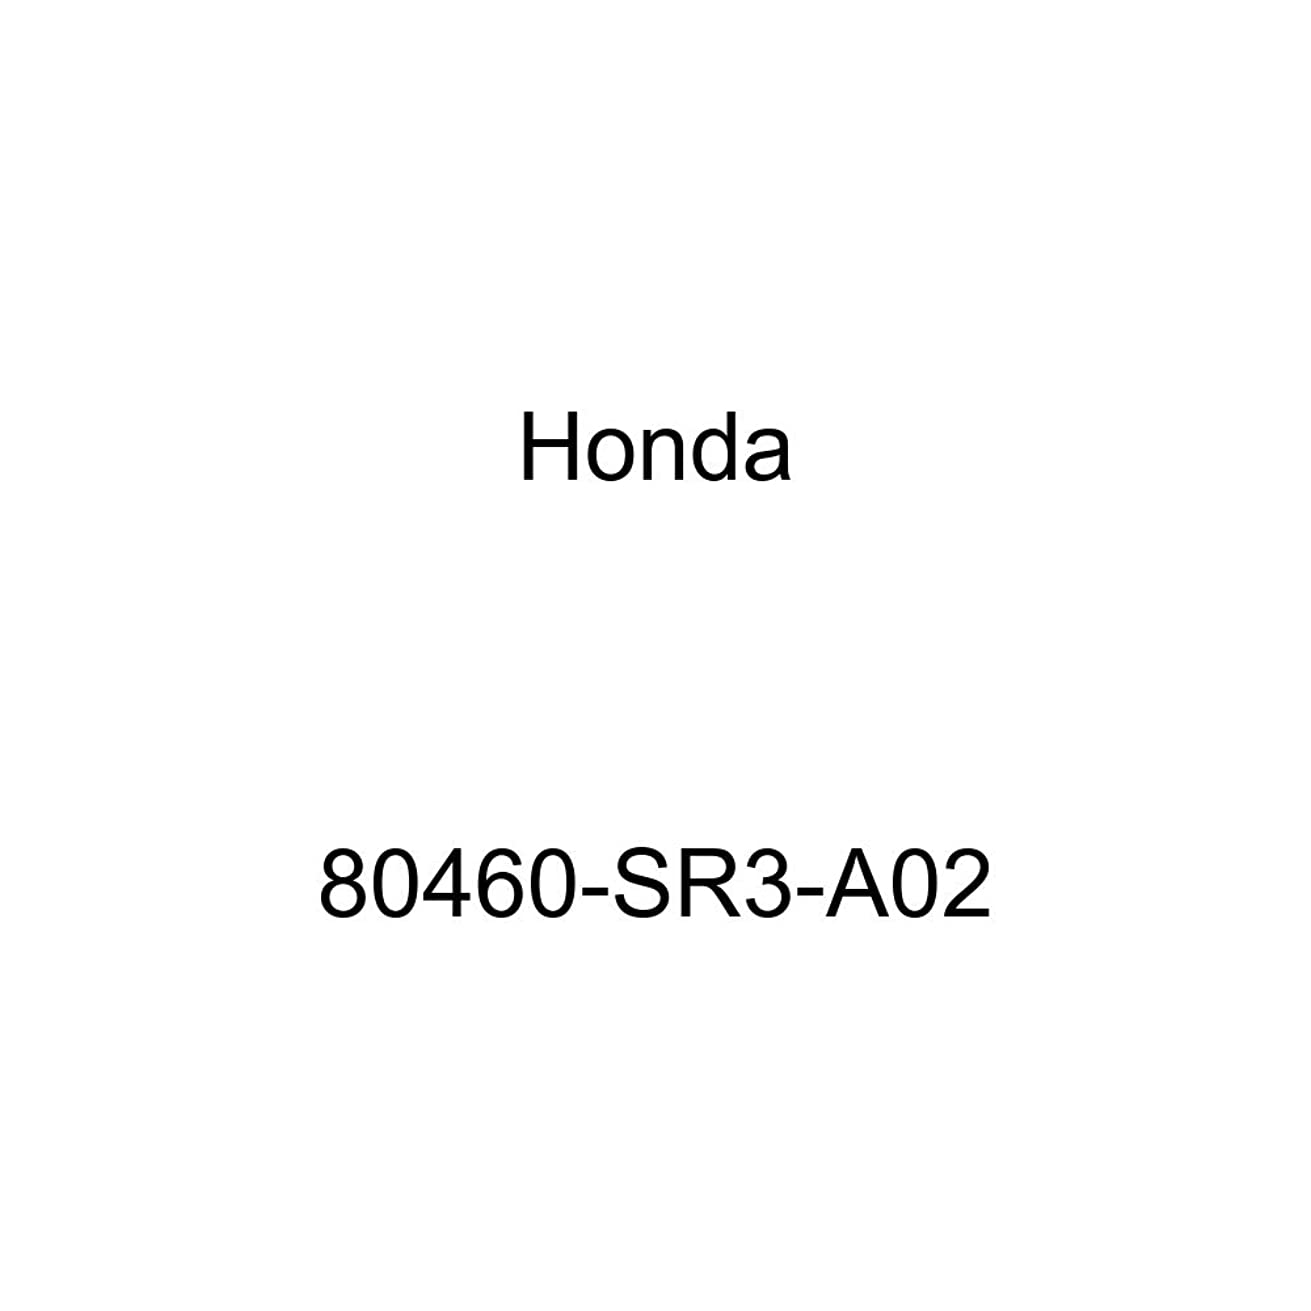 Genuine Honda 80460-SR3-A02 Air Conditioner Wiring Harness